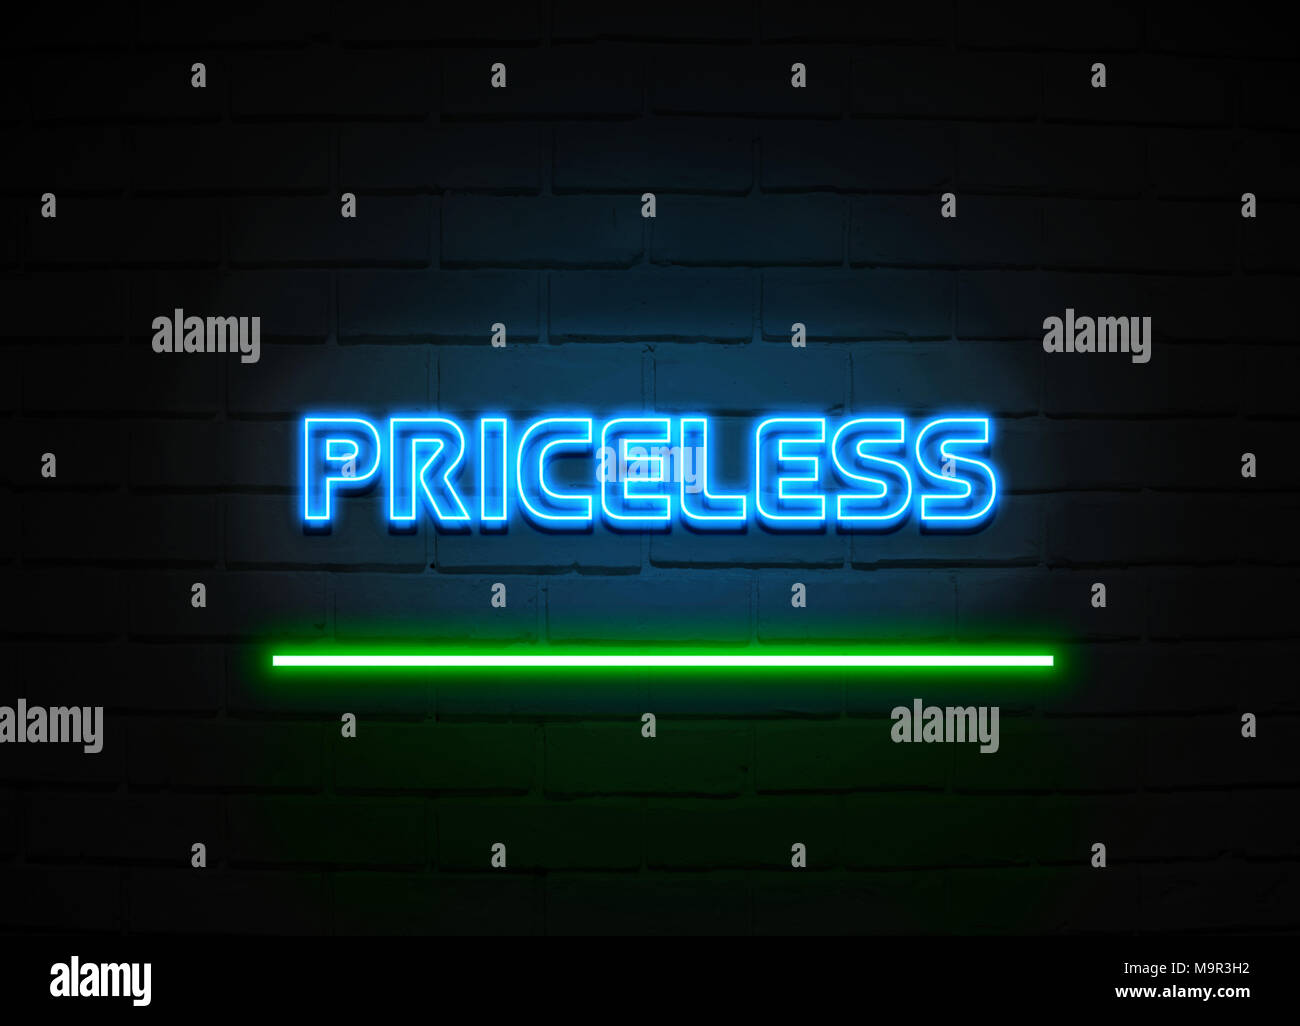 Priceless neon sign - Glowing Neon Sign on brickwall wall - 3D rendered royalty free stock illustration. - Stock Image